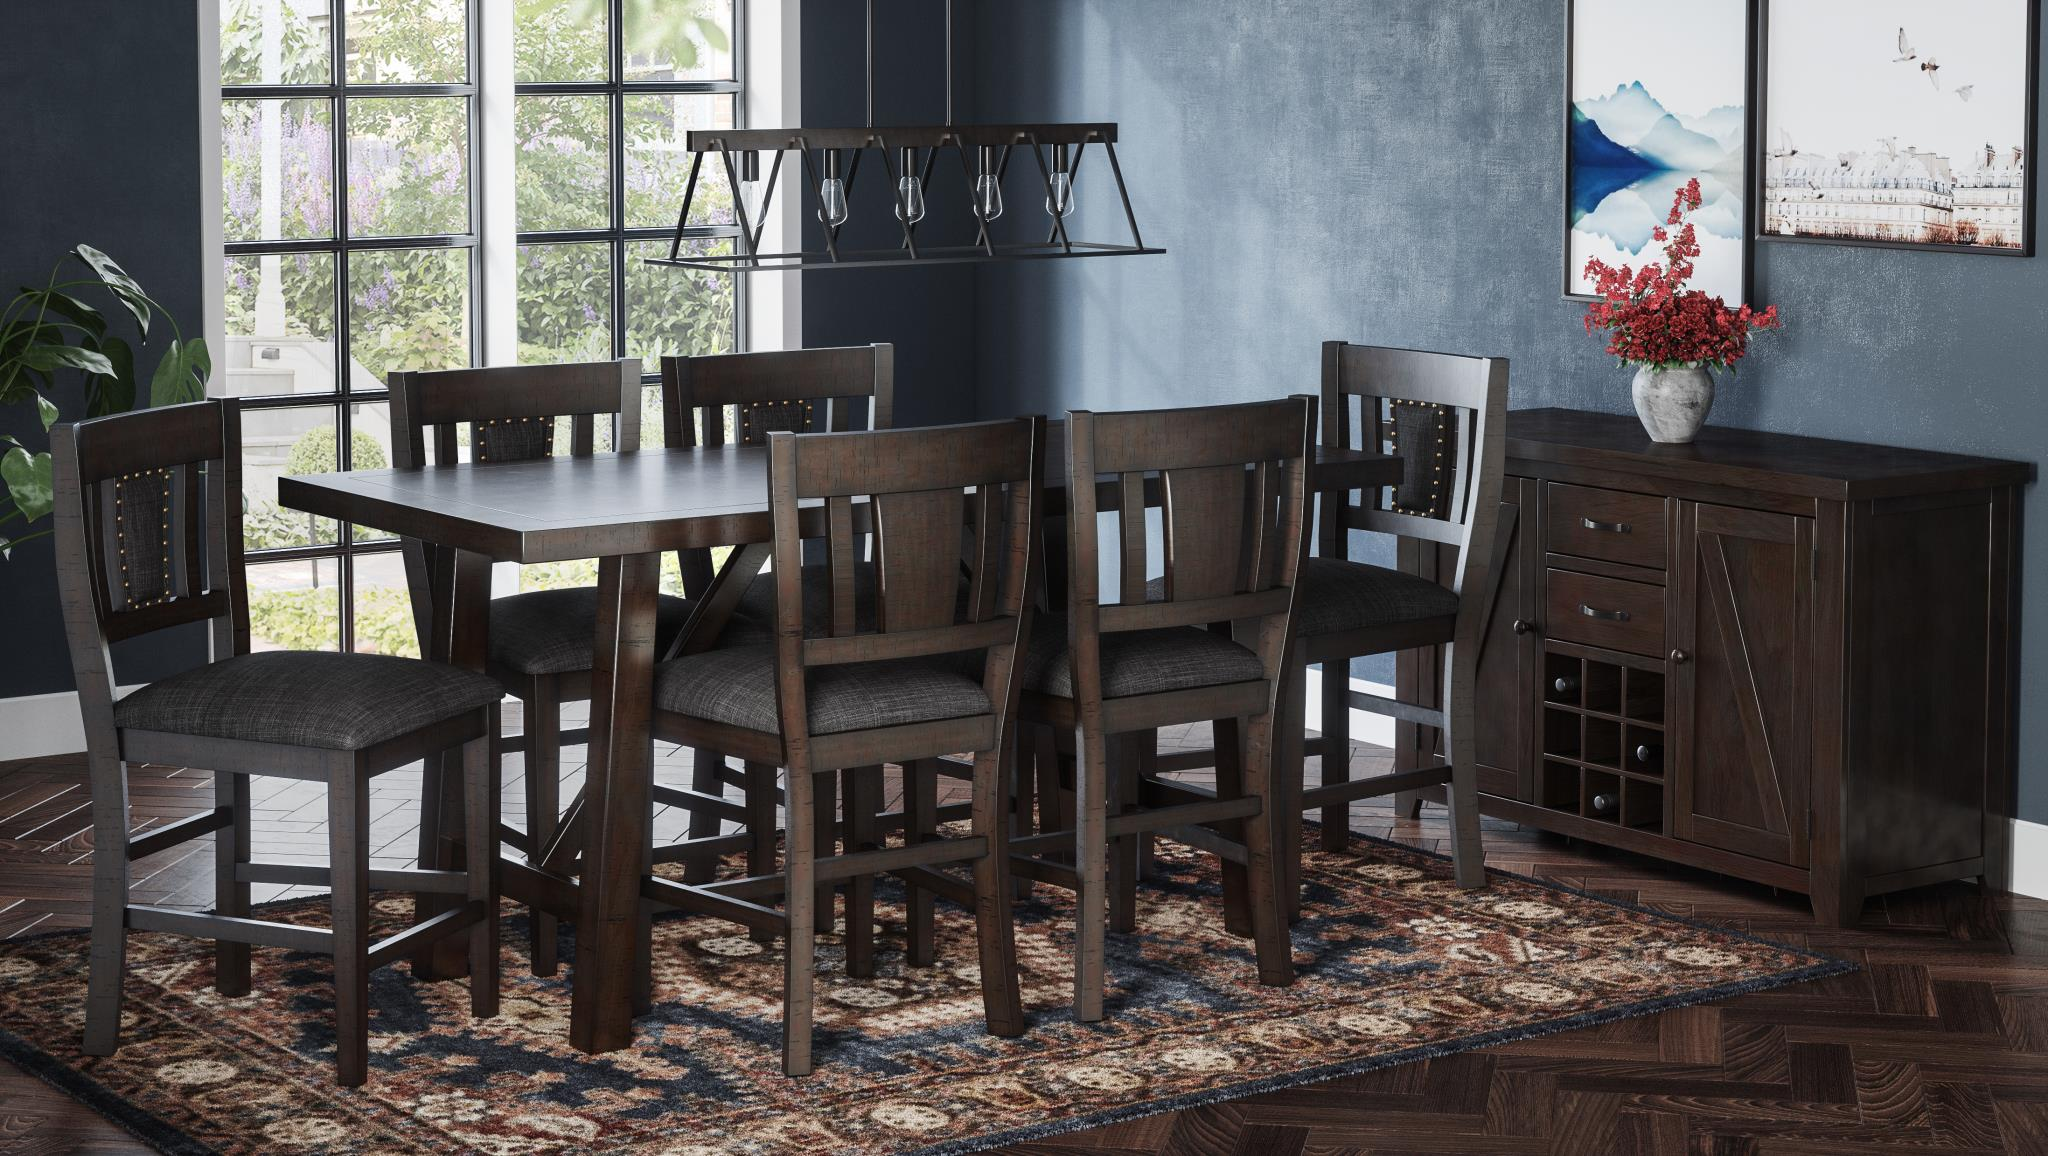 Summers Counter Height Dining Set - Lifestyle Furniture